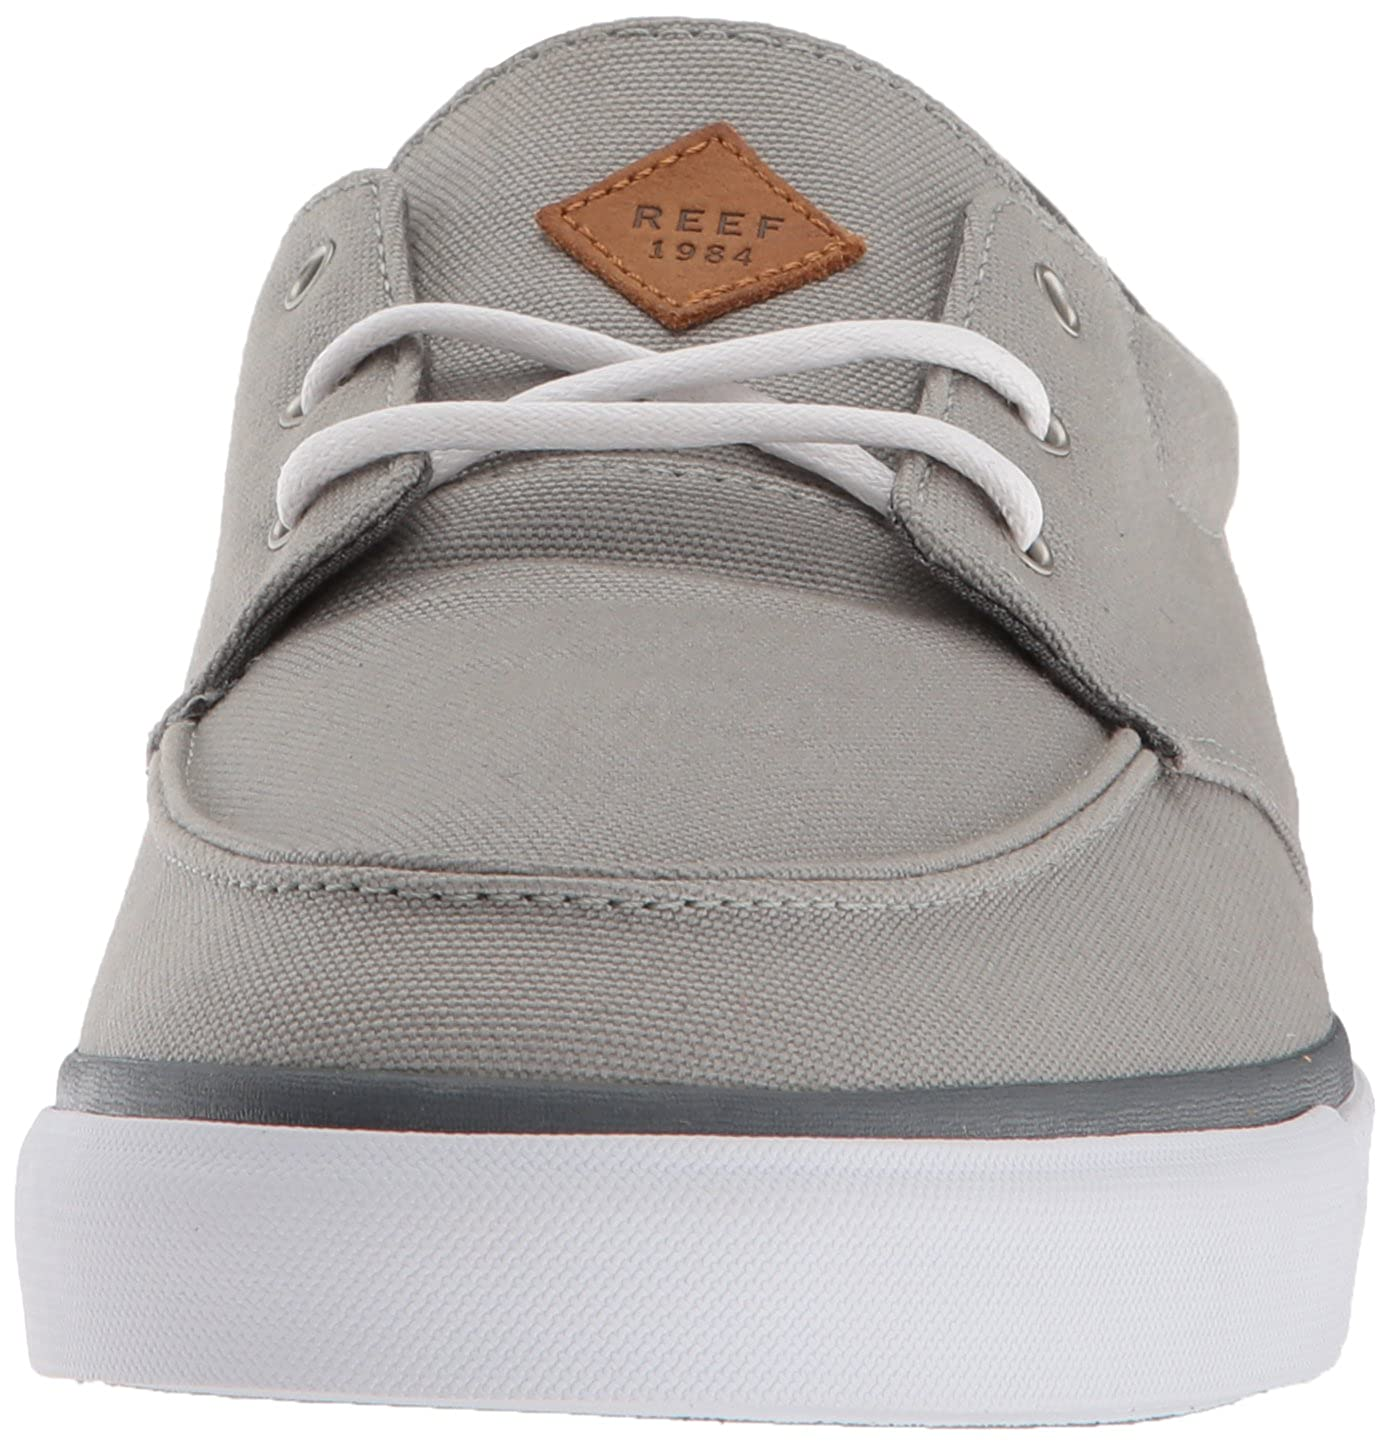 Amazon.com  Reef Men s Deckhand 3 Sneaker  Shoes 84745893a37